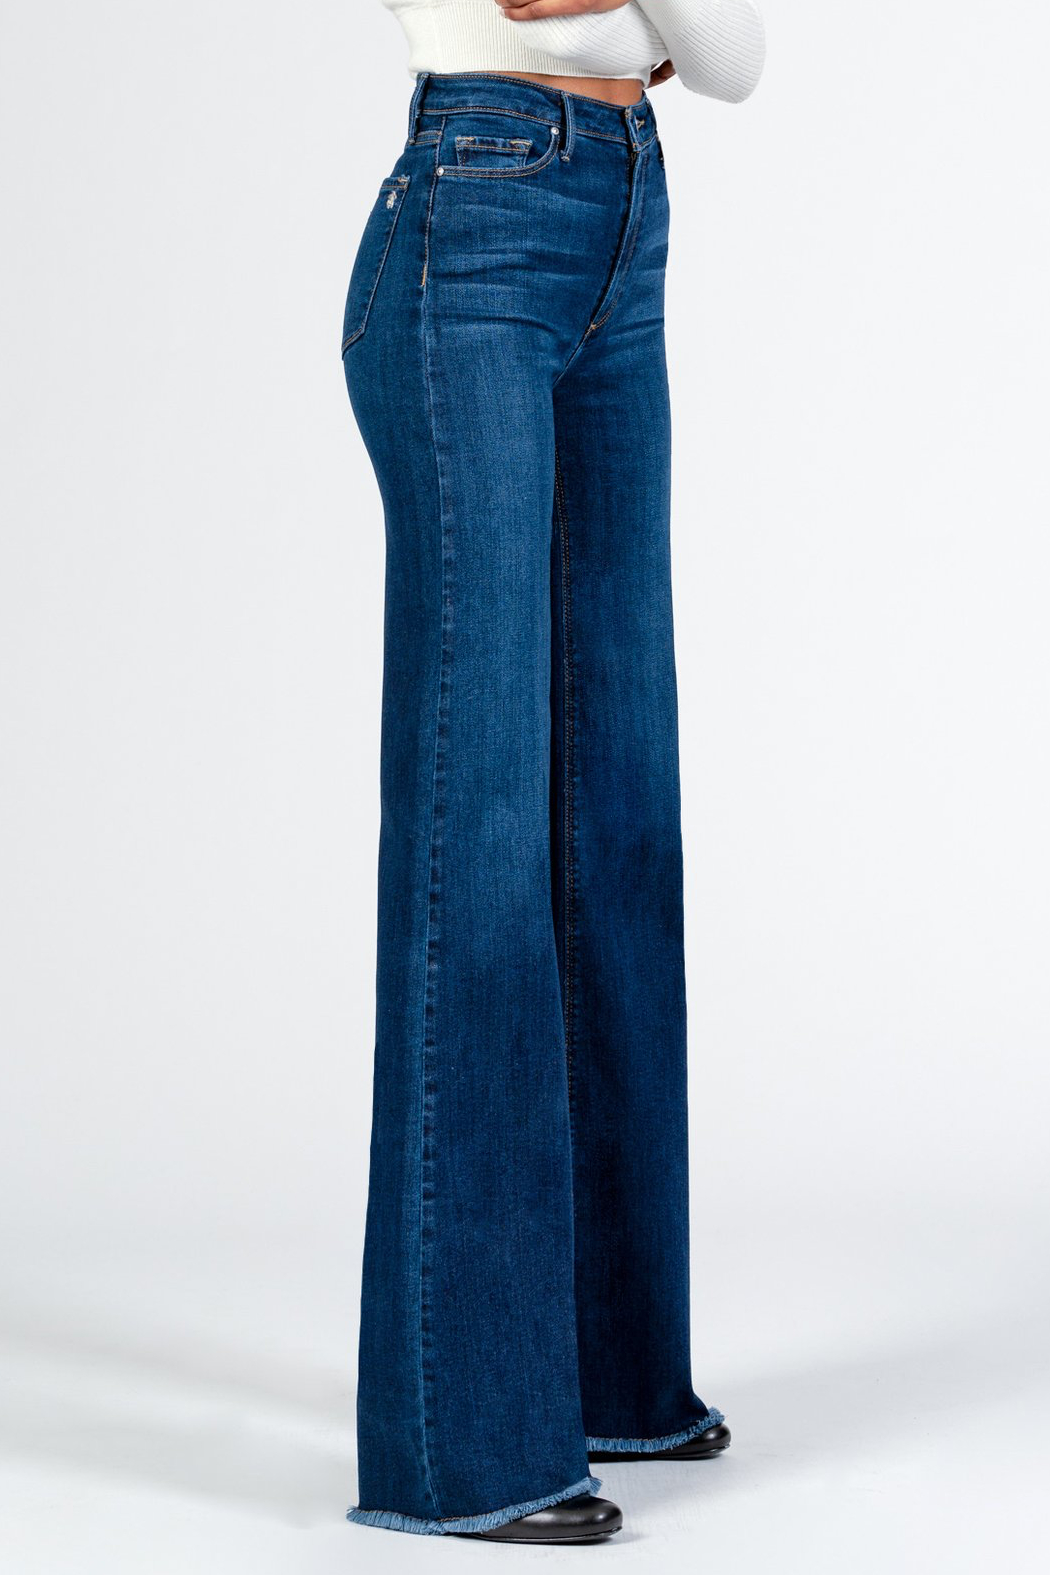 Black Orchid Denim Claudia Wide Leg Jeans - Main Image